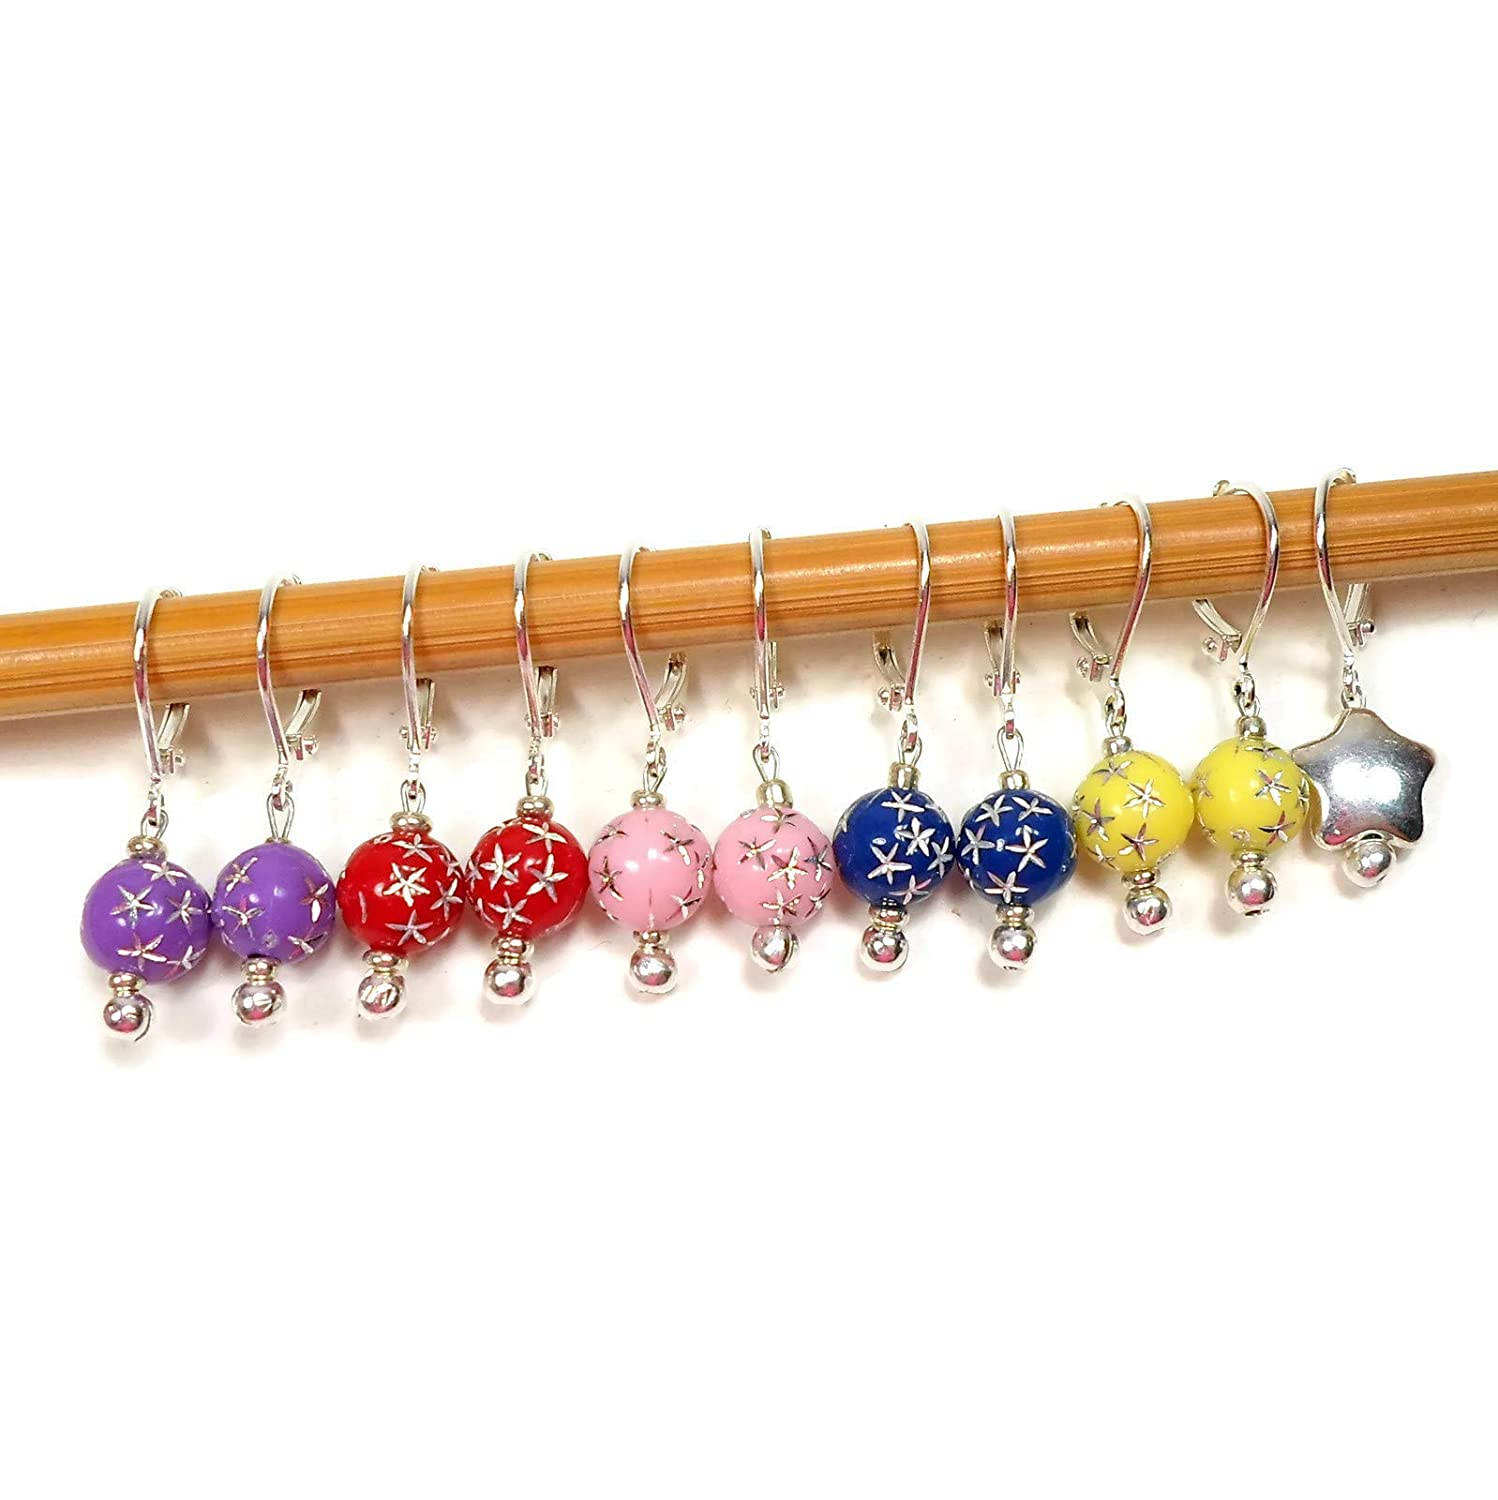 Handmade Multi-colored Removable Stitch Markers